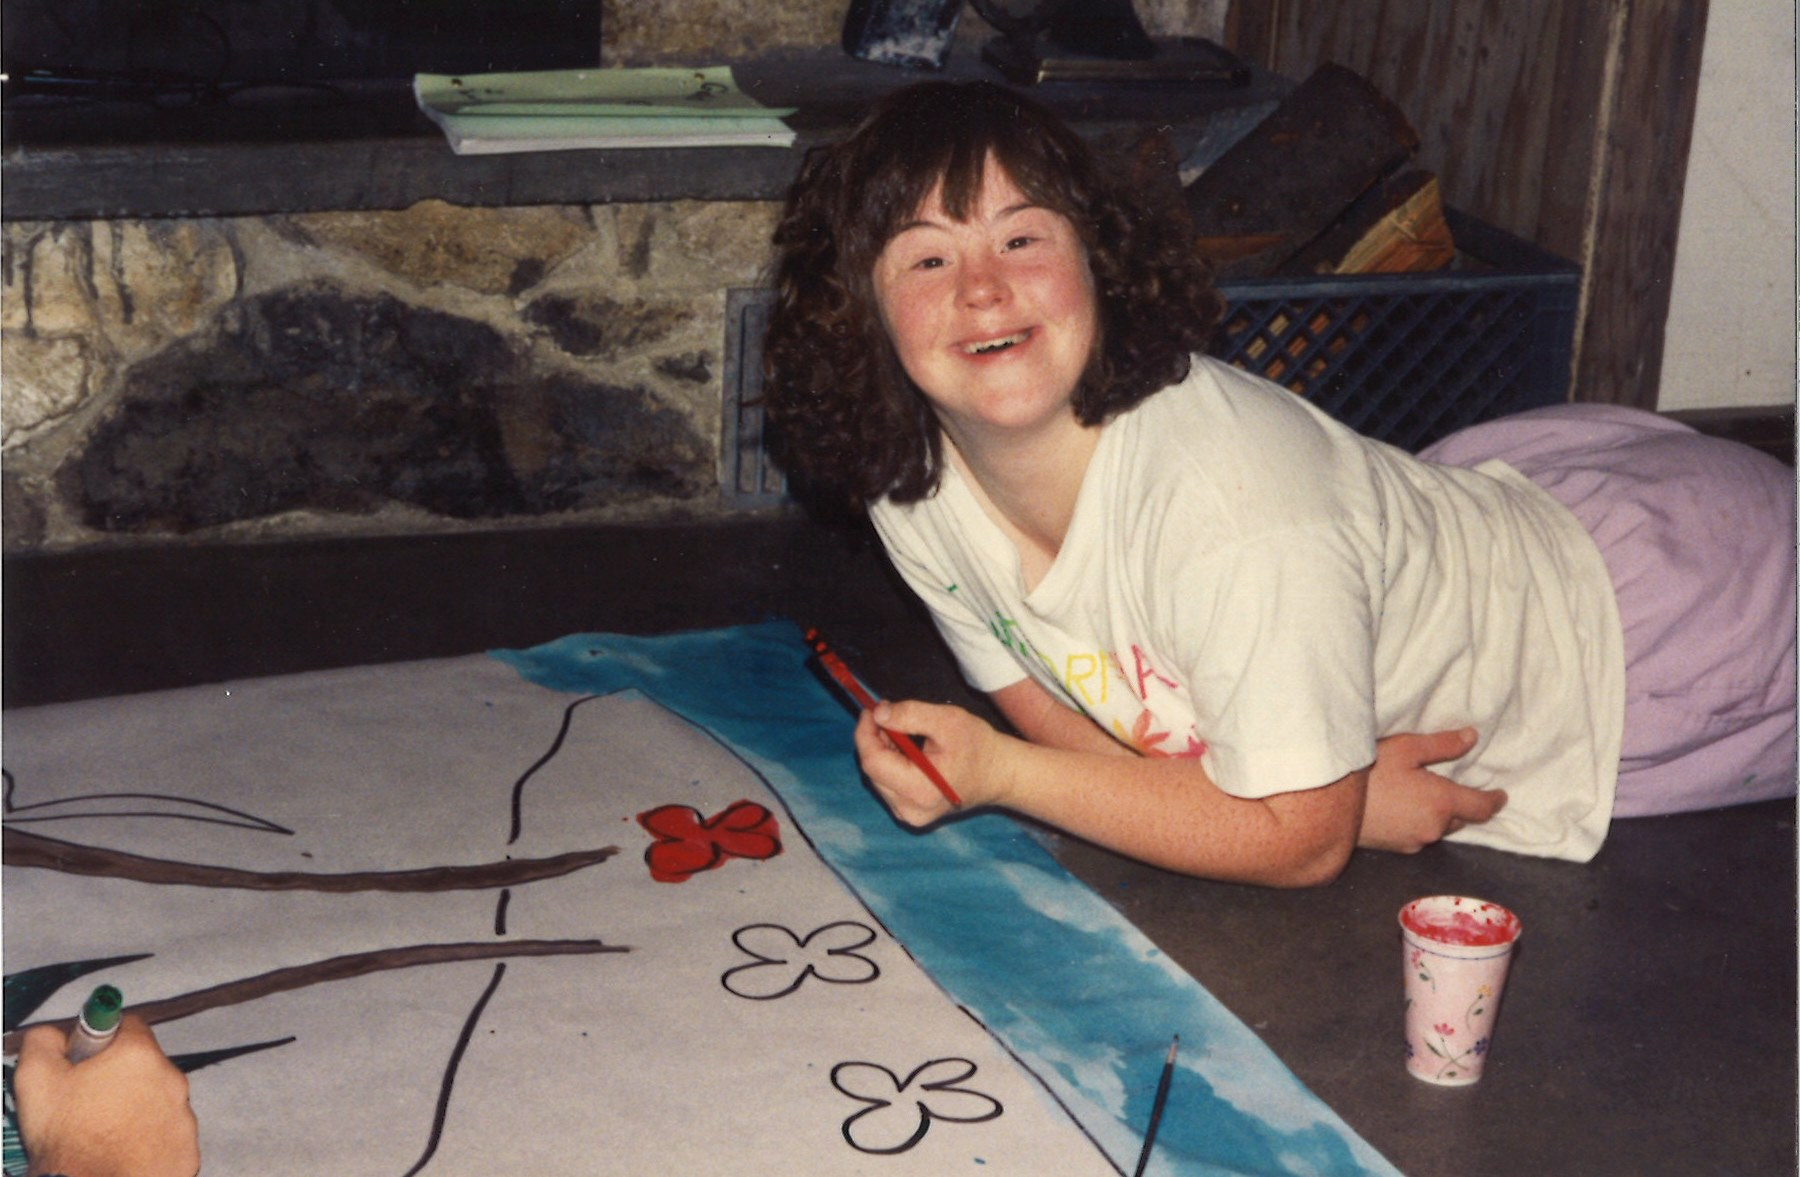 160-467-11-2-girl-artist-at-gold-crk-lodge-camp-for-disabled-youth-1993